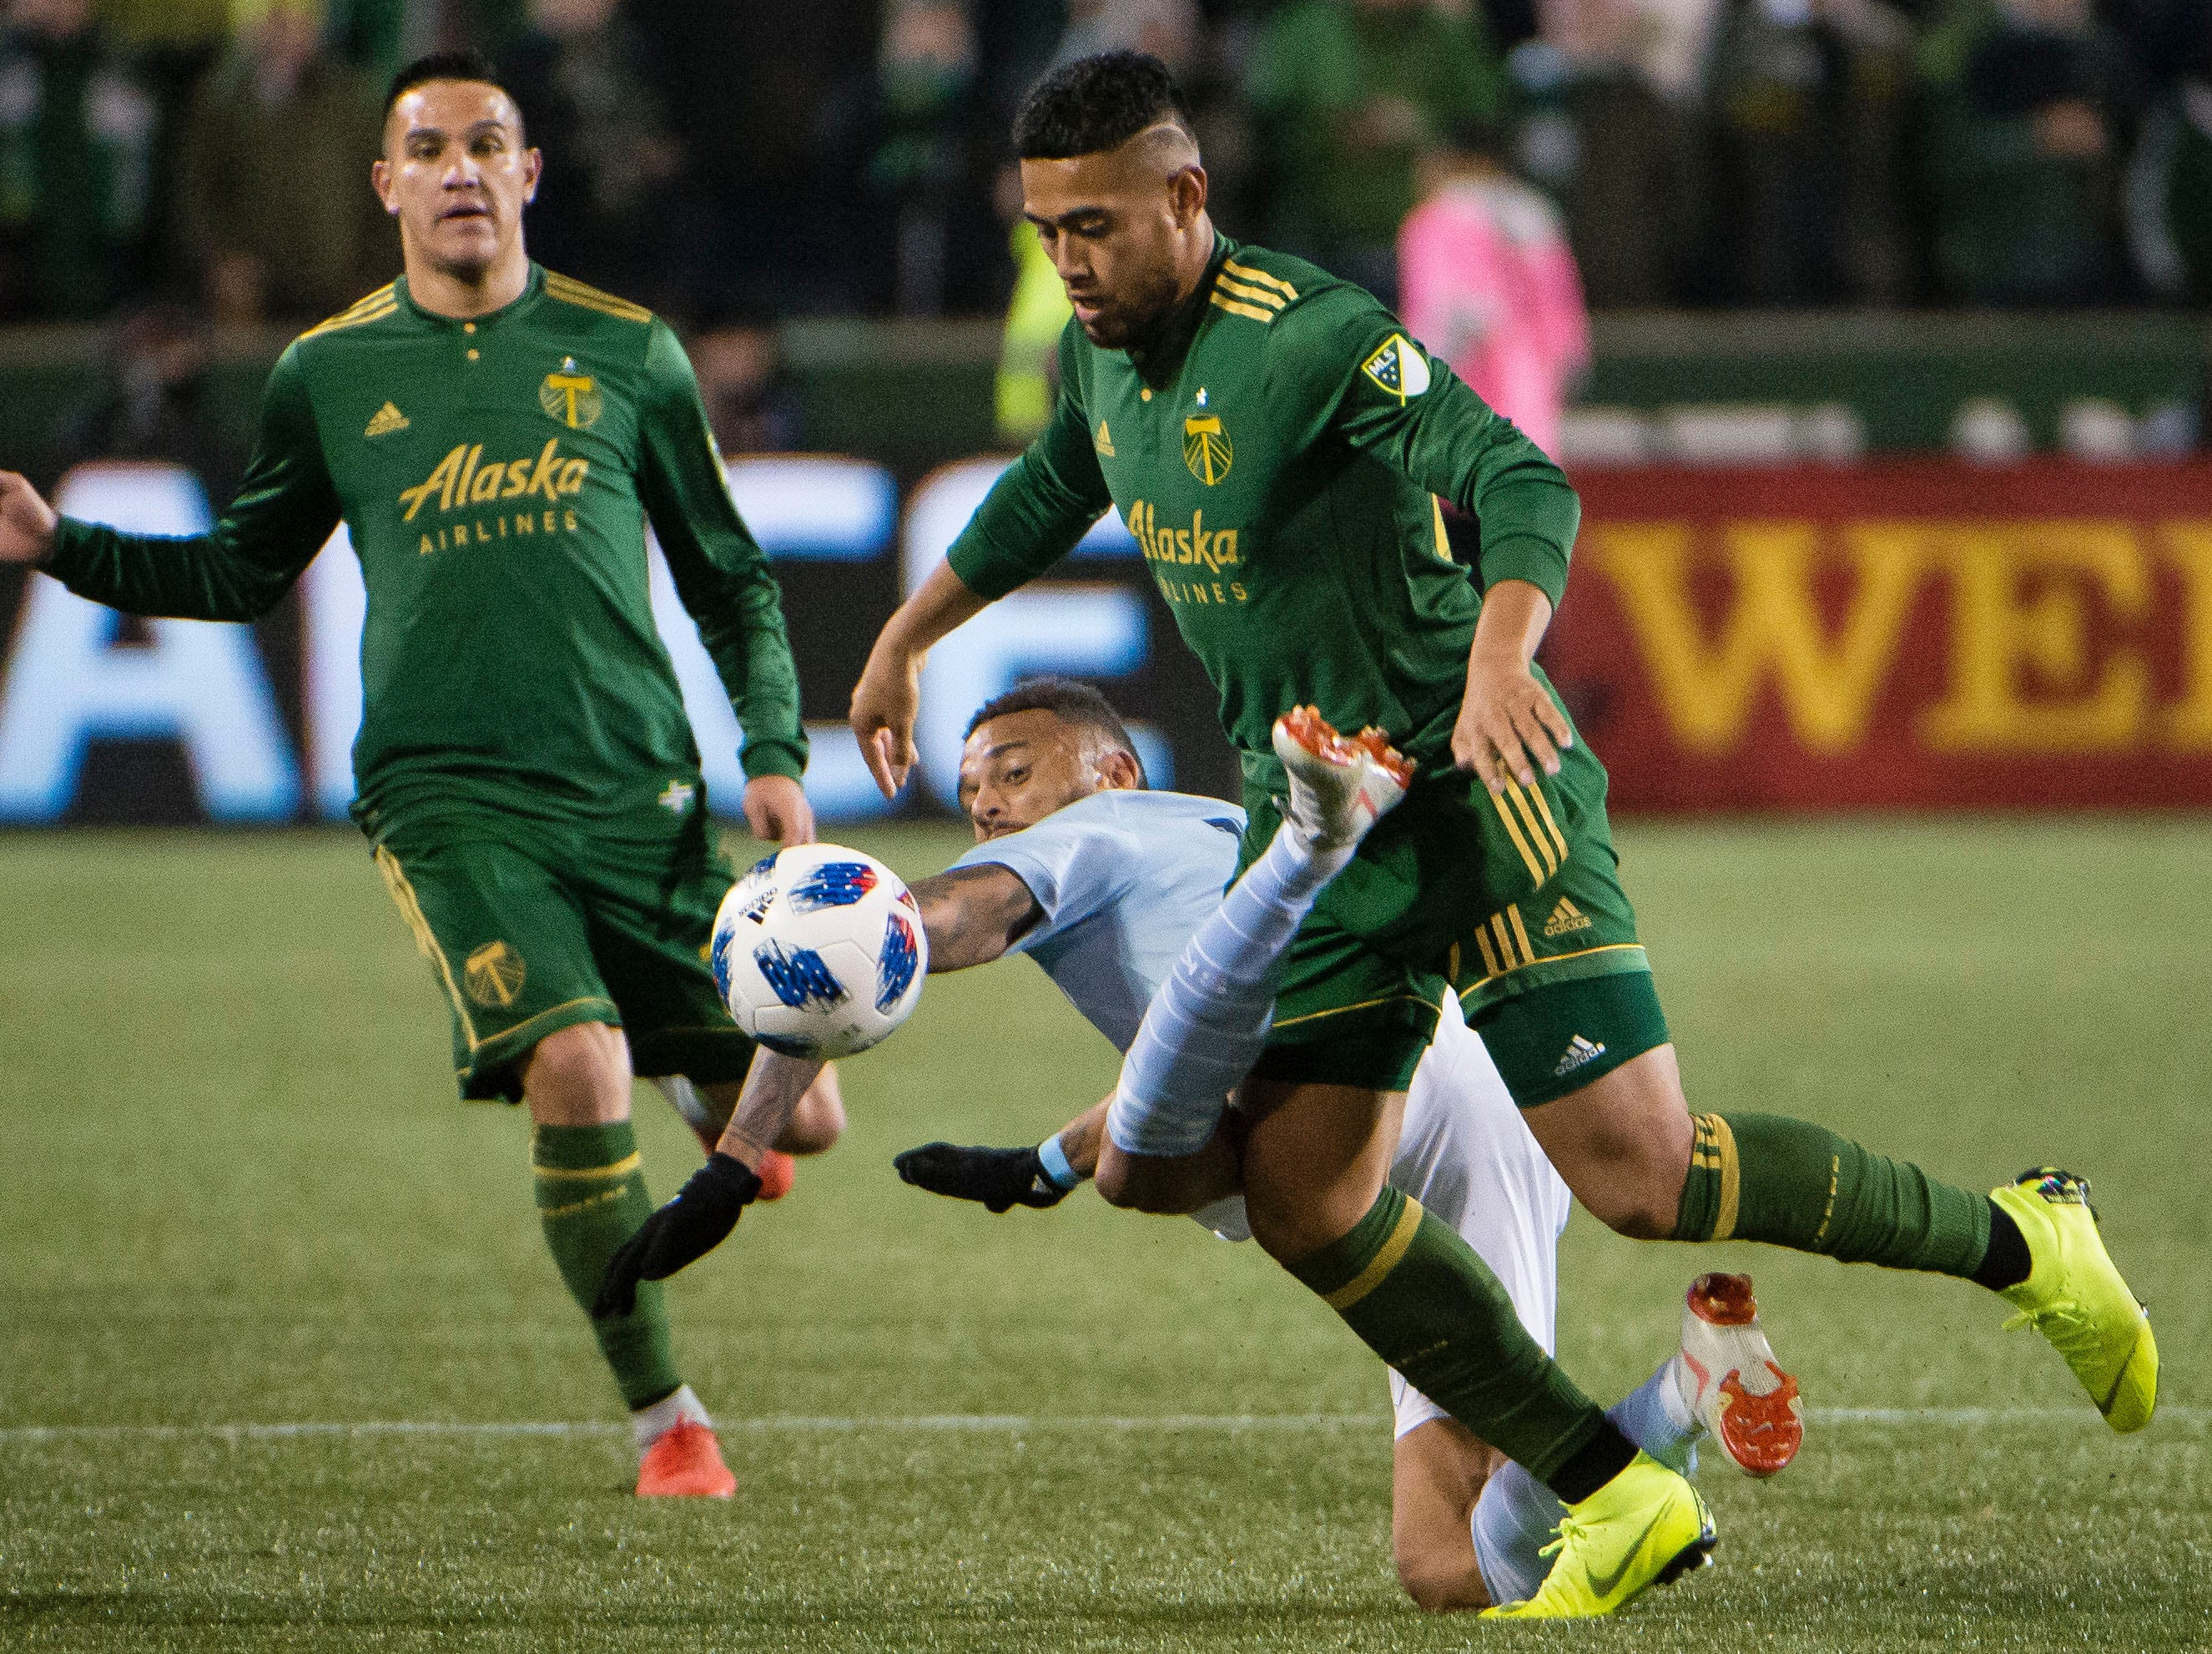 Nov 25, 2018; Portland, OR, USA; Sporting Kansas City forward Khiry Shelton (14) gets tangled up with Portland Timbers defender Bill Tuiloma (25) during the second half in the first leg of the MLS Western Conference Championship at Providence Park. The game ended tied 0-0.  Mandatory Credit: Troy Wayrynen-USA TODAY Sports